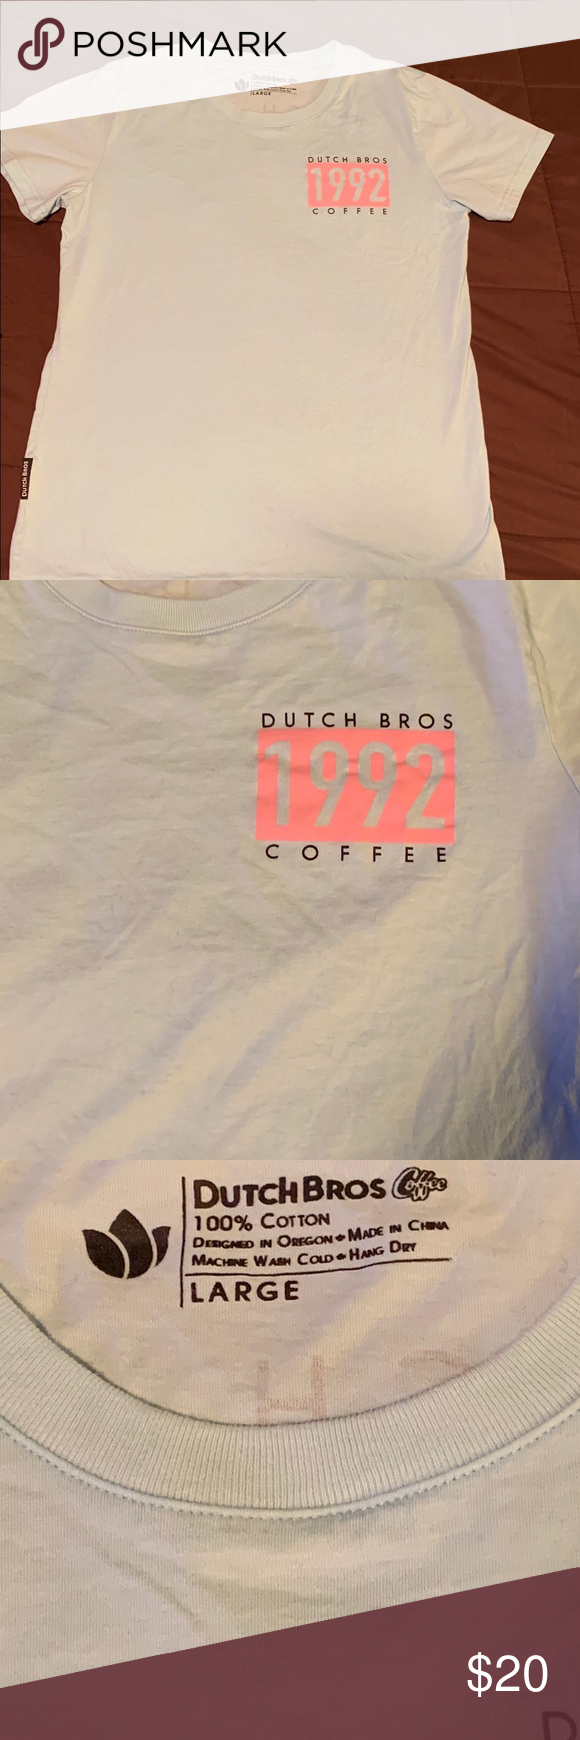 Dutch Bros T-shirt, Size Large Worn only once, excellent condition, no stains or rips, non smoke home. Dutch Bros Tops Tees - Short Sleeve #dutchbros Dutch Bros T-shirt, Size Large Worn only once, excellent condition, no stains or rips, non smoke home. Dutch Bros Tops Tees - Short Sleeve #dutchbros